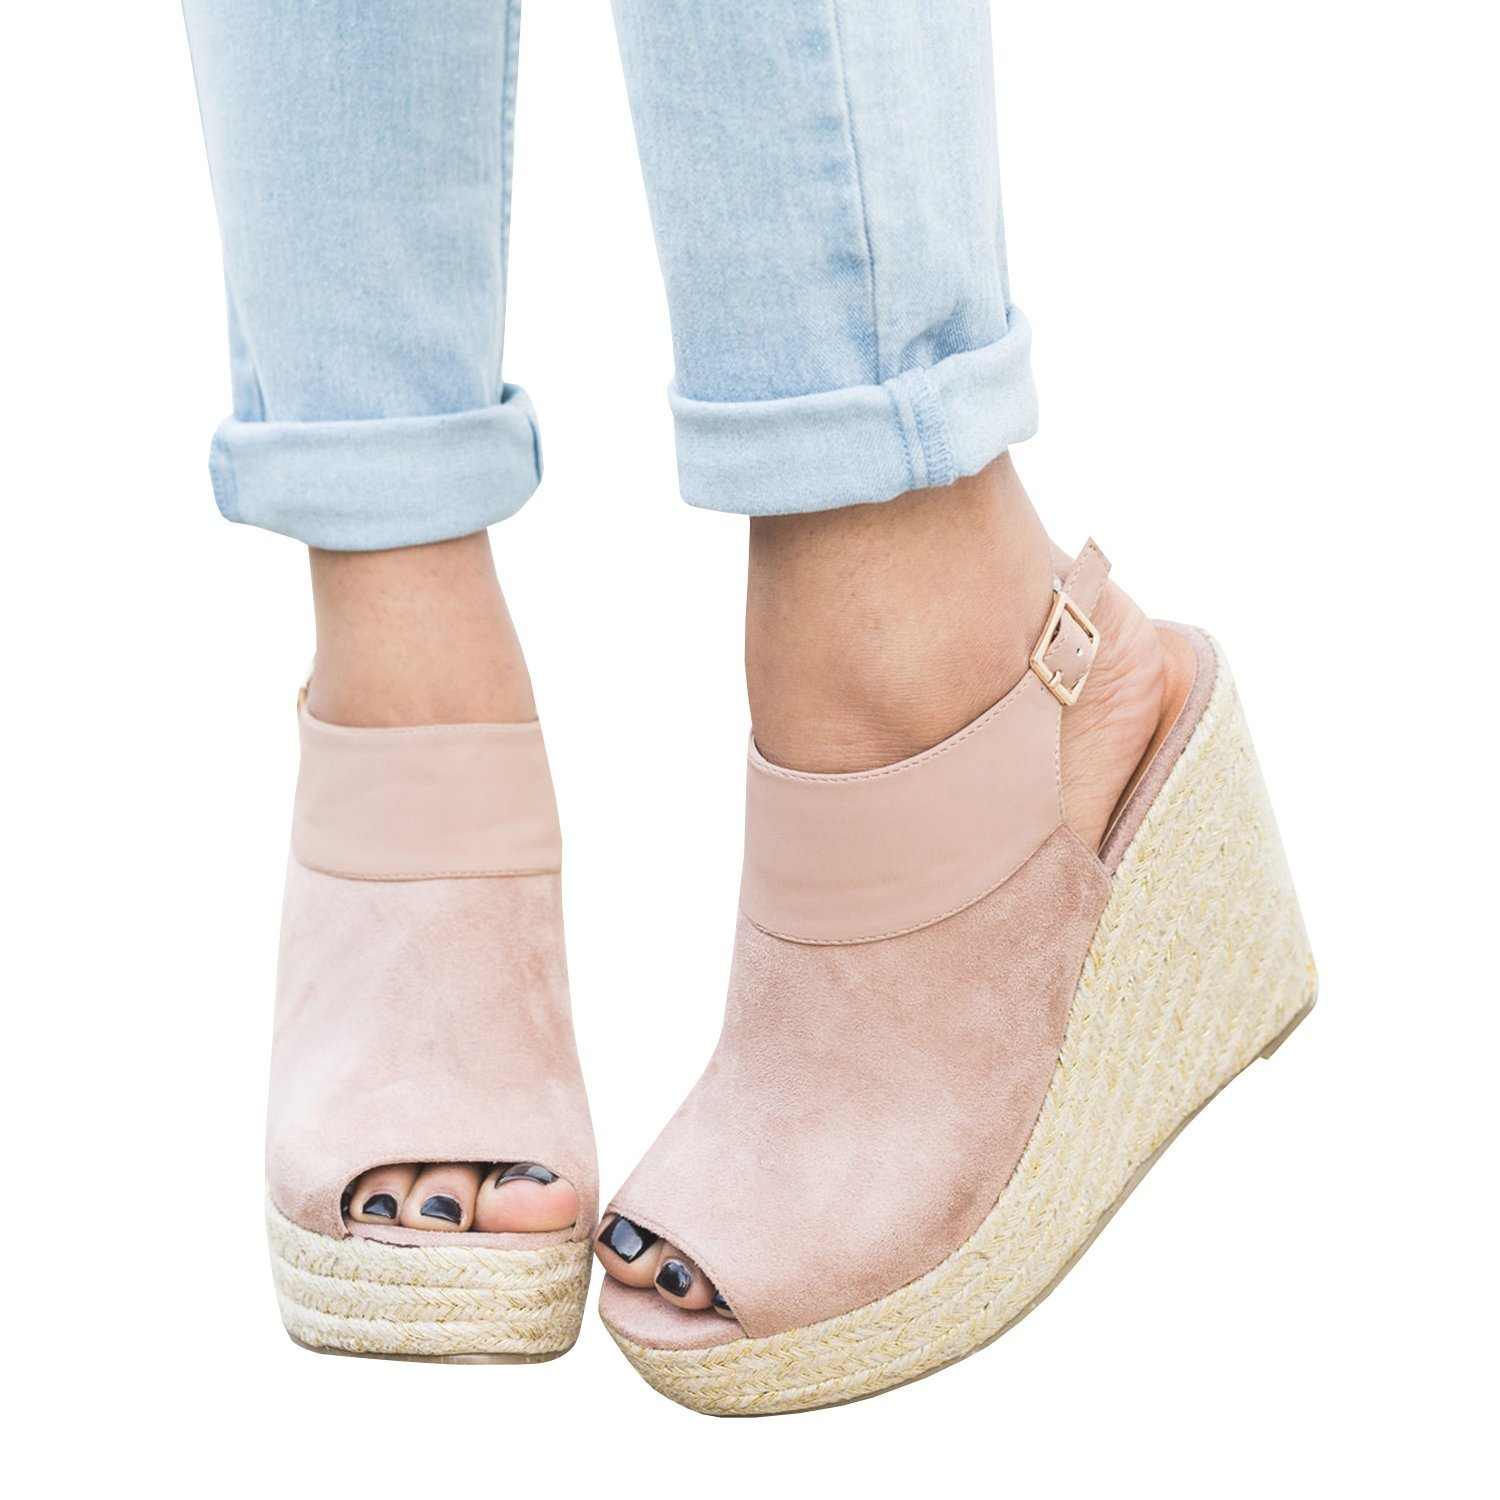 06cf948bb011d Get Quotations · Womens Wedges Strappy Sandal Closed Toe Ankle Warp  Espadrilles Heel Sandalias